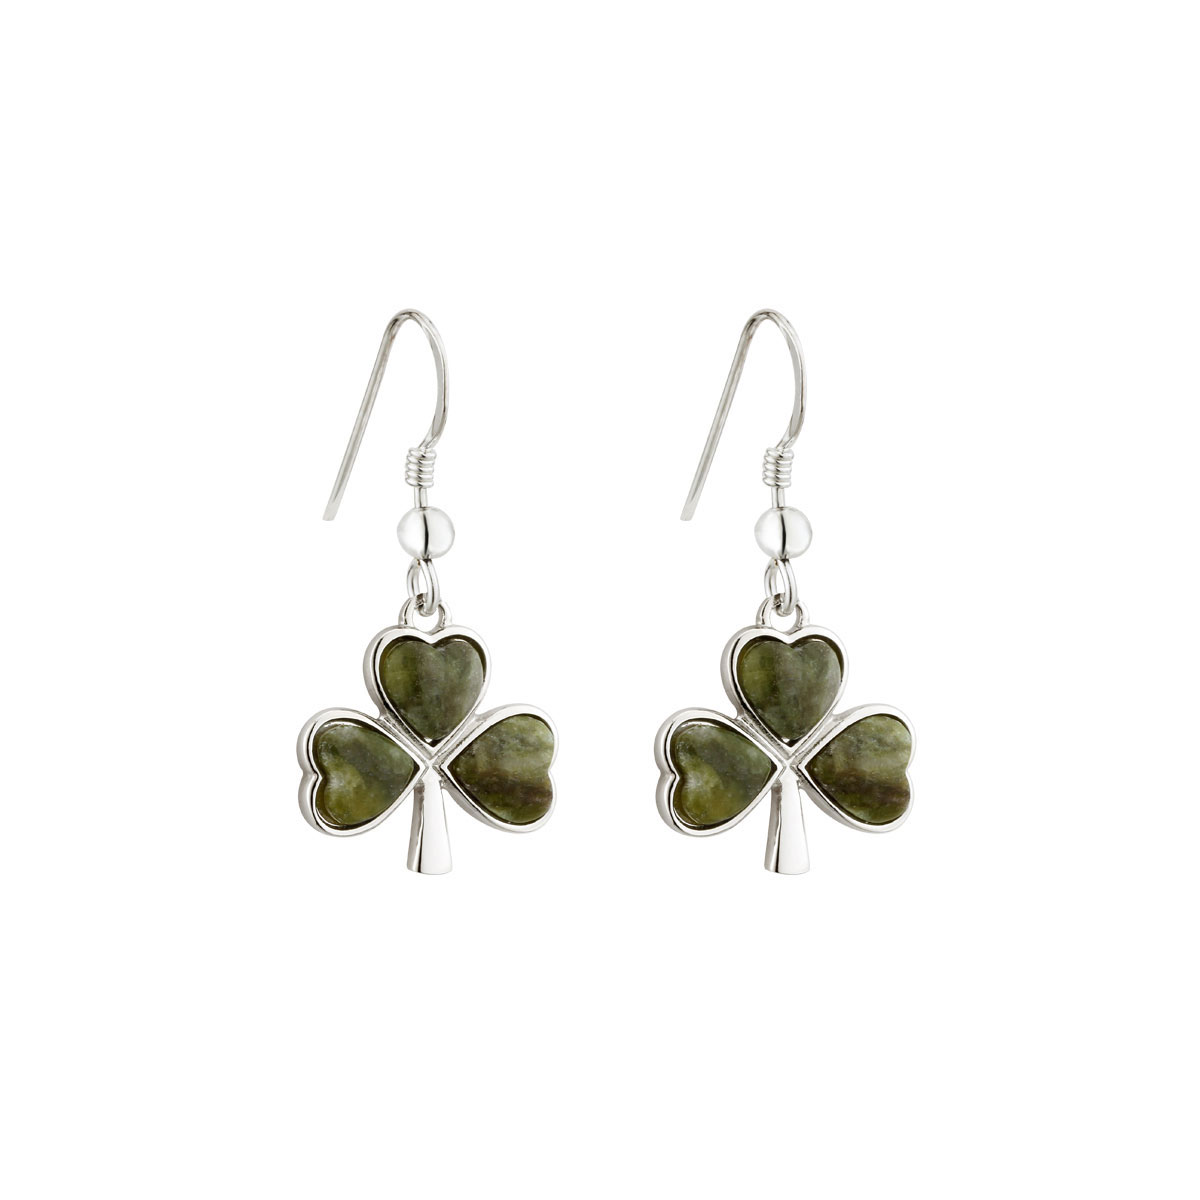 Cashs Ireland, Sterling Silver and Connemara Marble Shamrock Pierced Earrings Pair